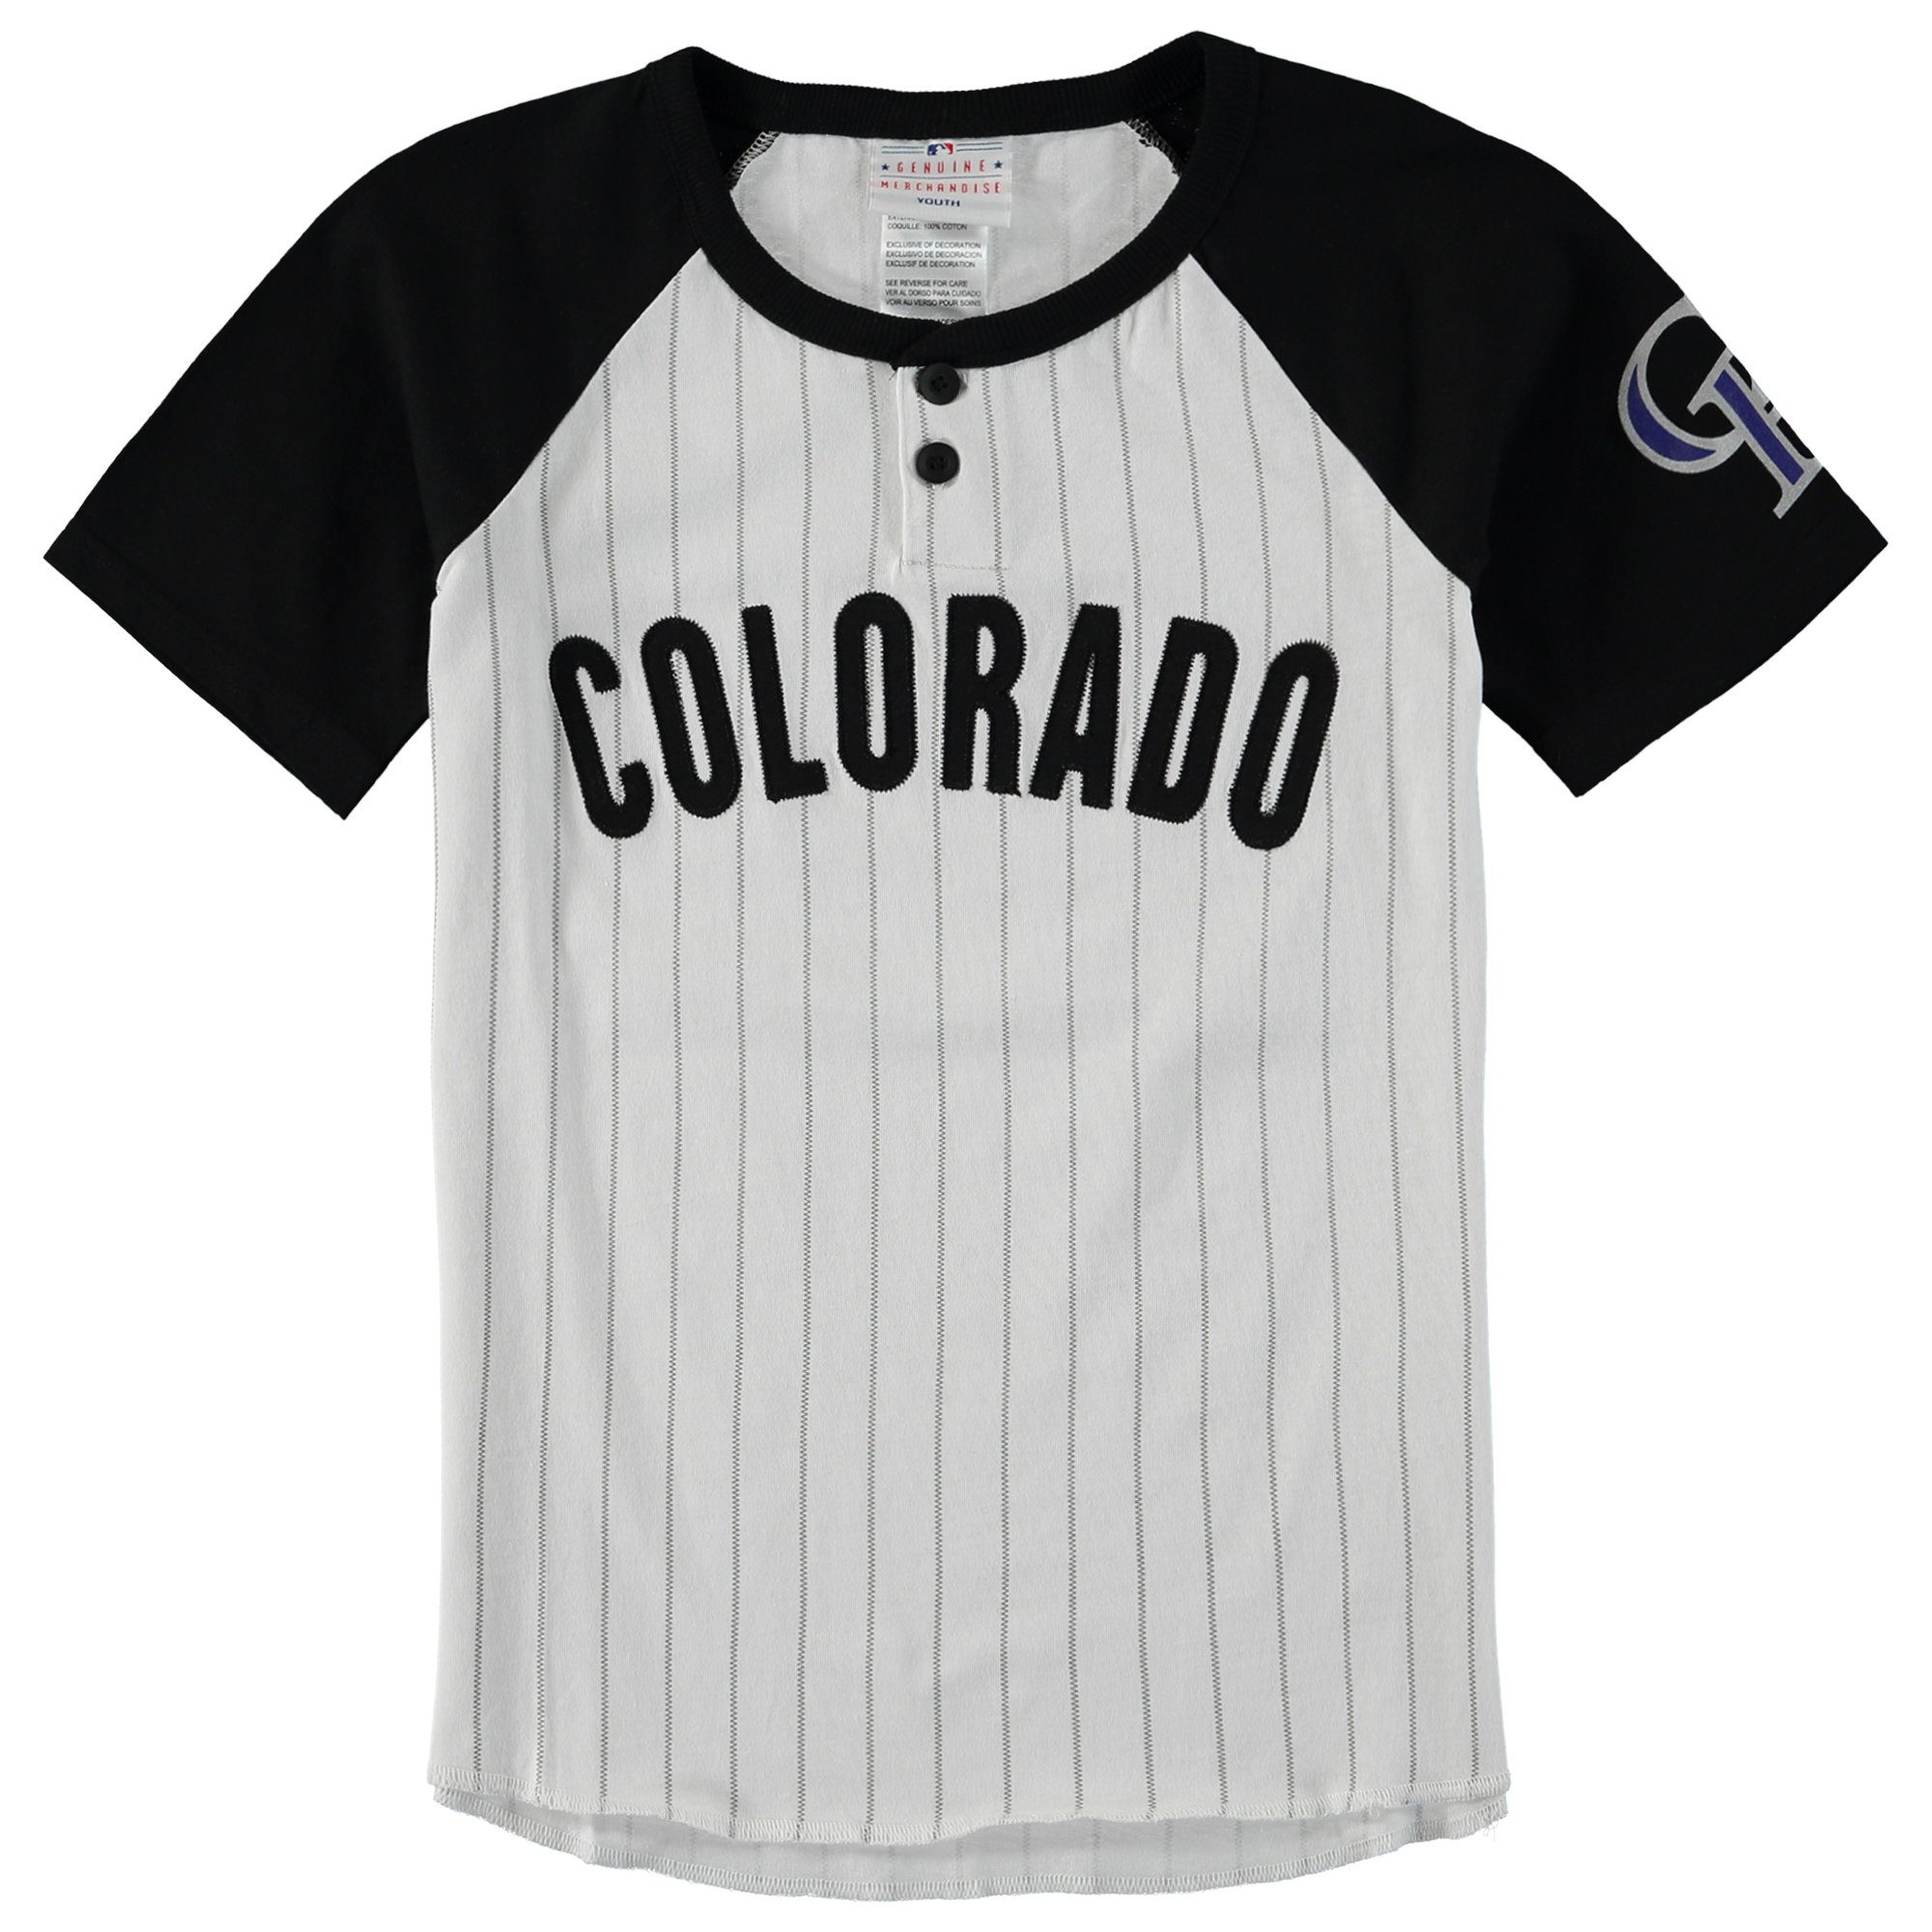 Colorado Rockies Youth Game Day Jersey T-Shirt - White/Black